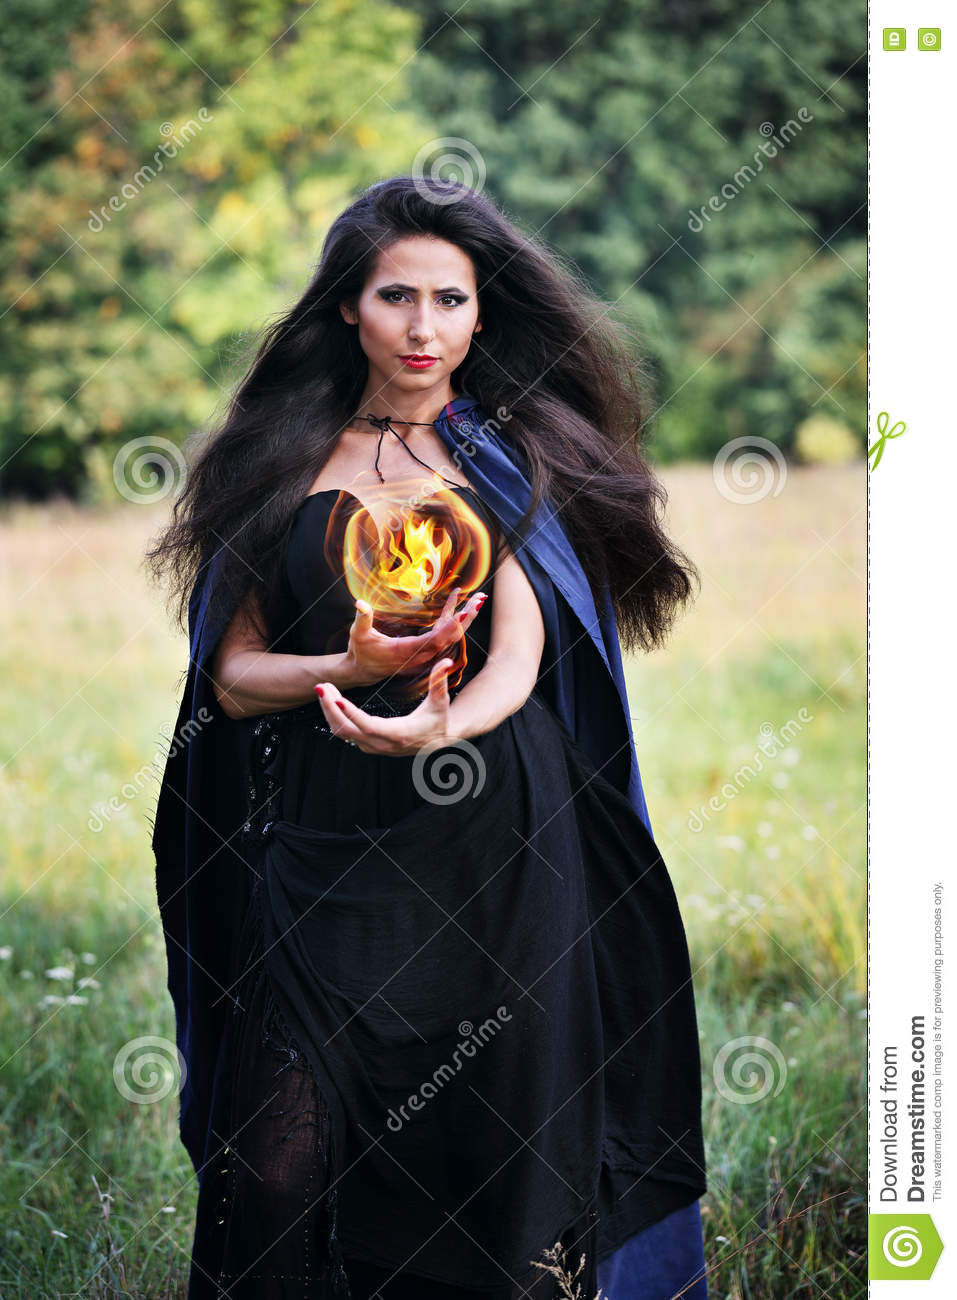 Witch holding a fireball stock photo. Image of glamour - 75898116 for Holding Fireball  193tgx